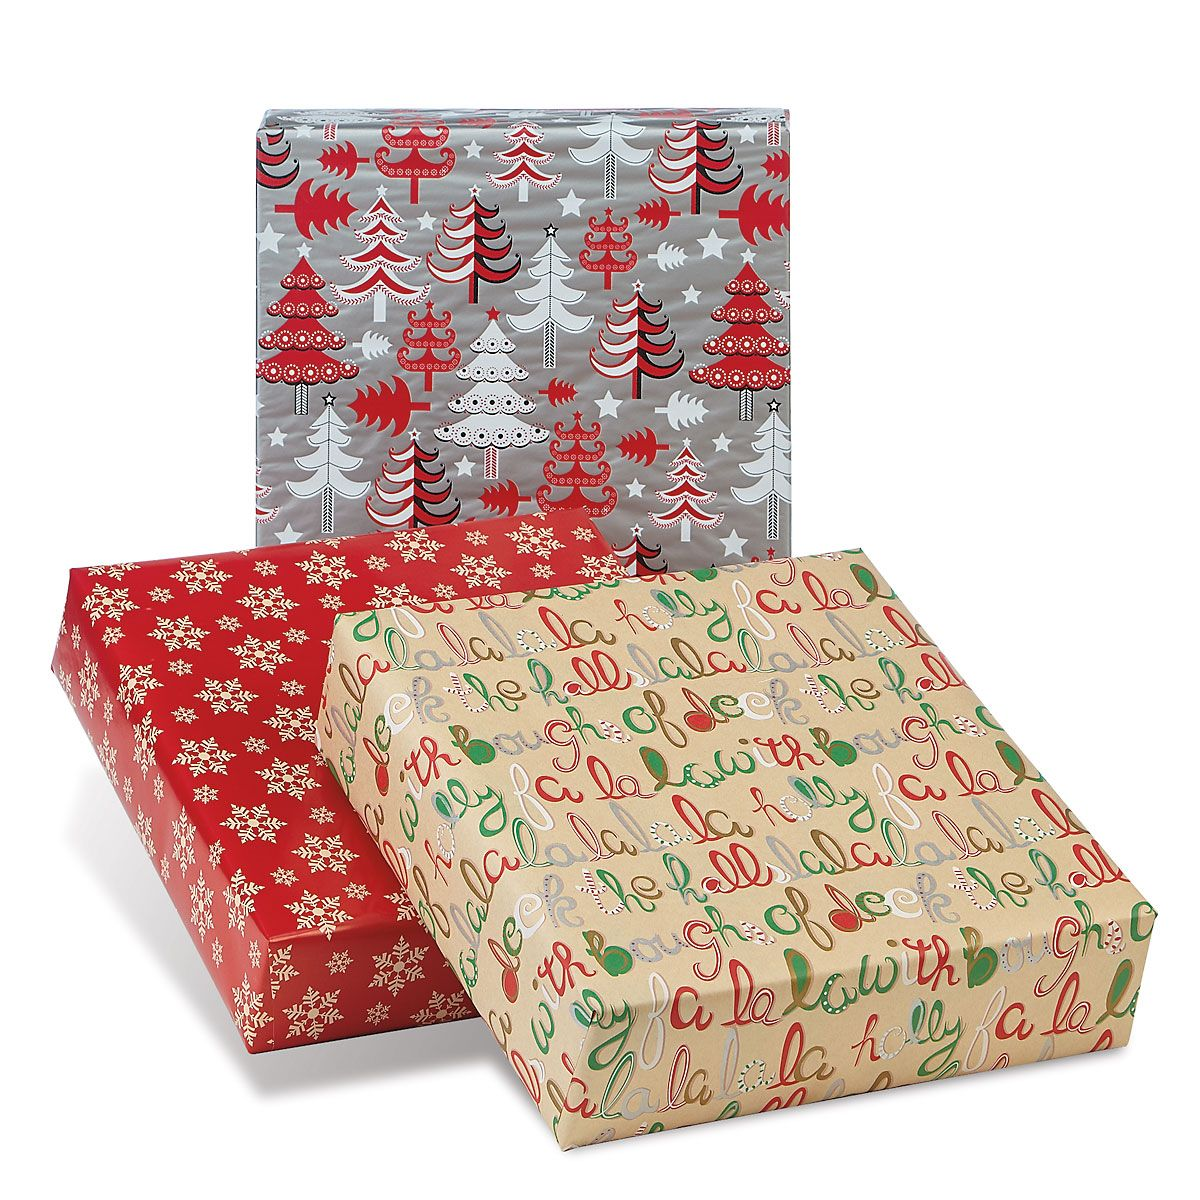 Festive Collection Jumbo Rolled Christmas Wrapping Paper Set